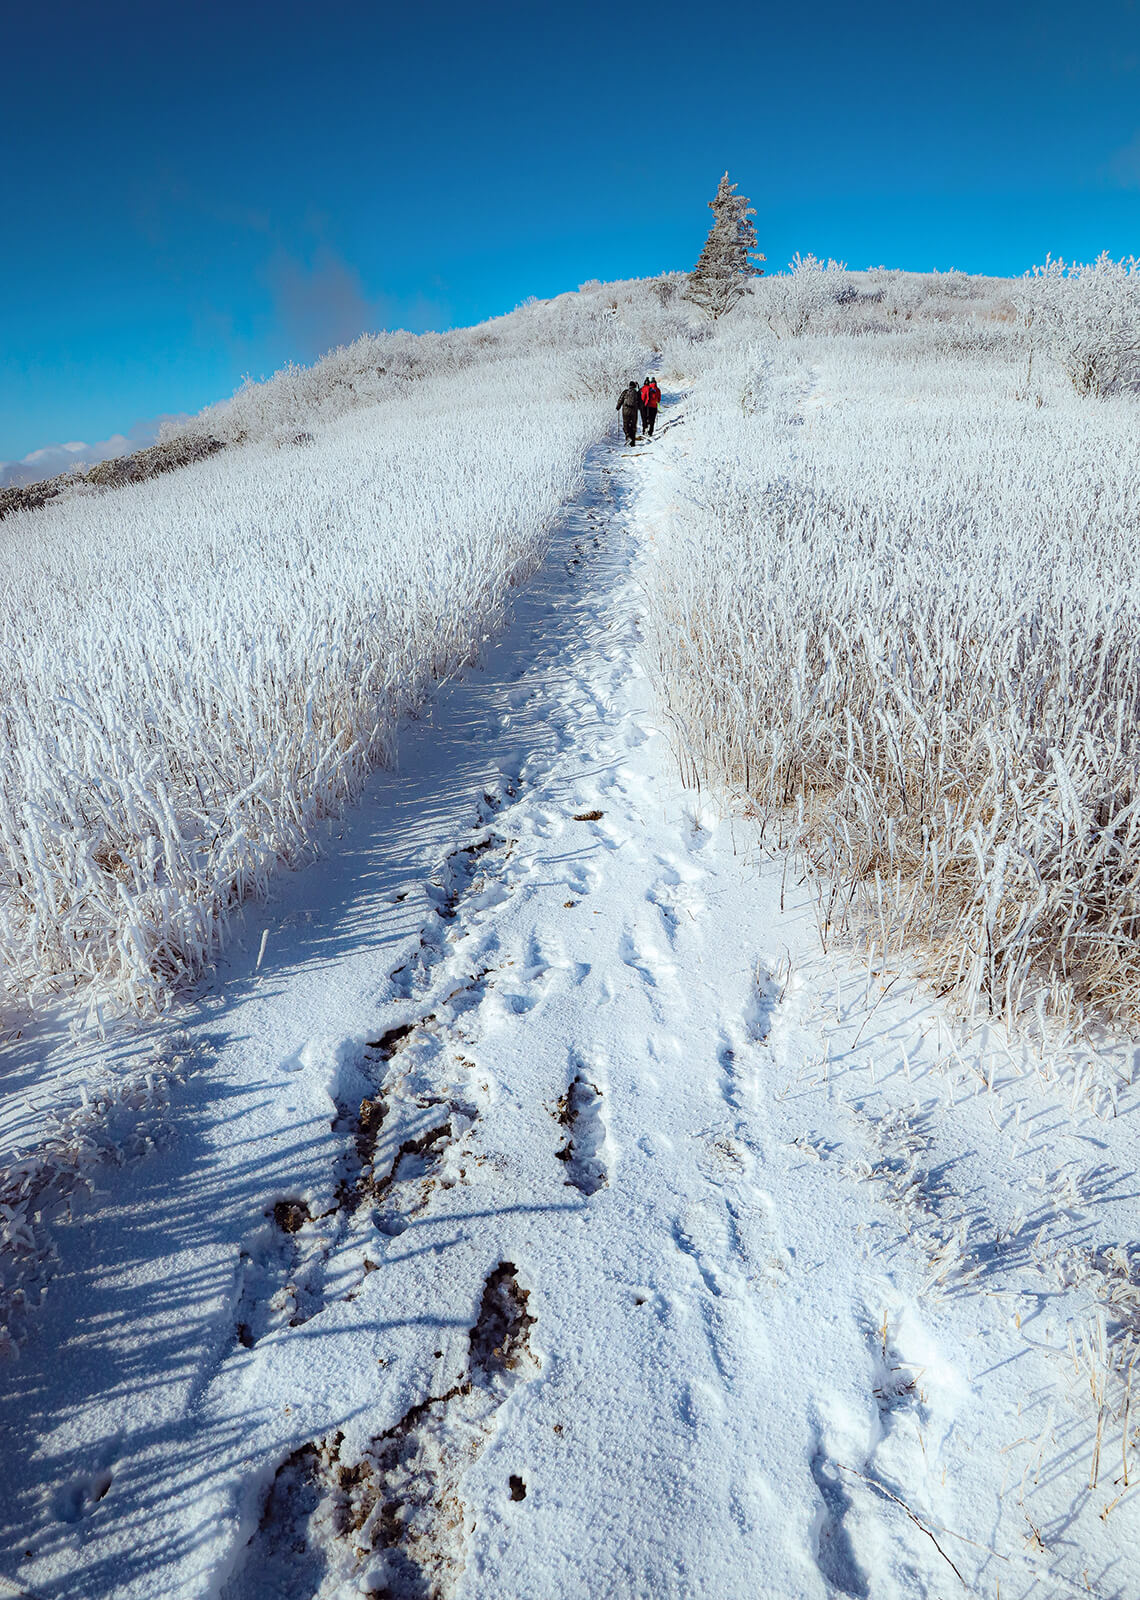 Wintry hike to a peak of Roan Mountain.